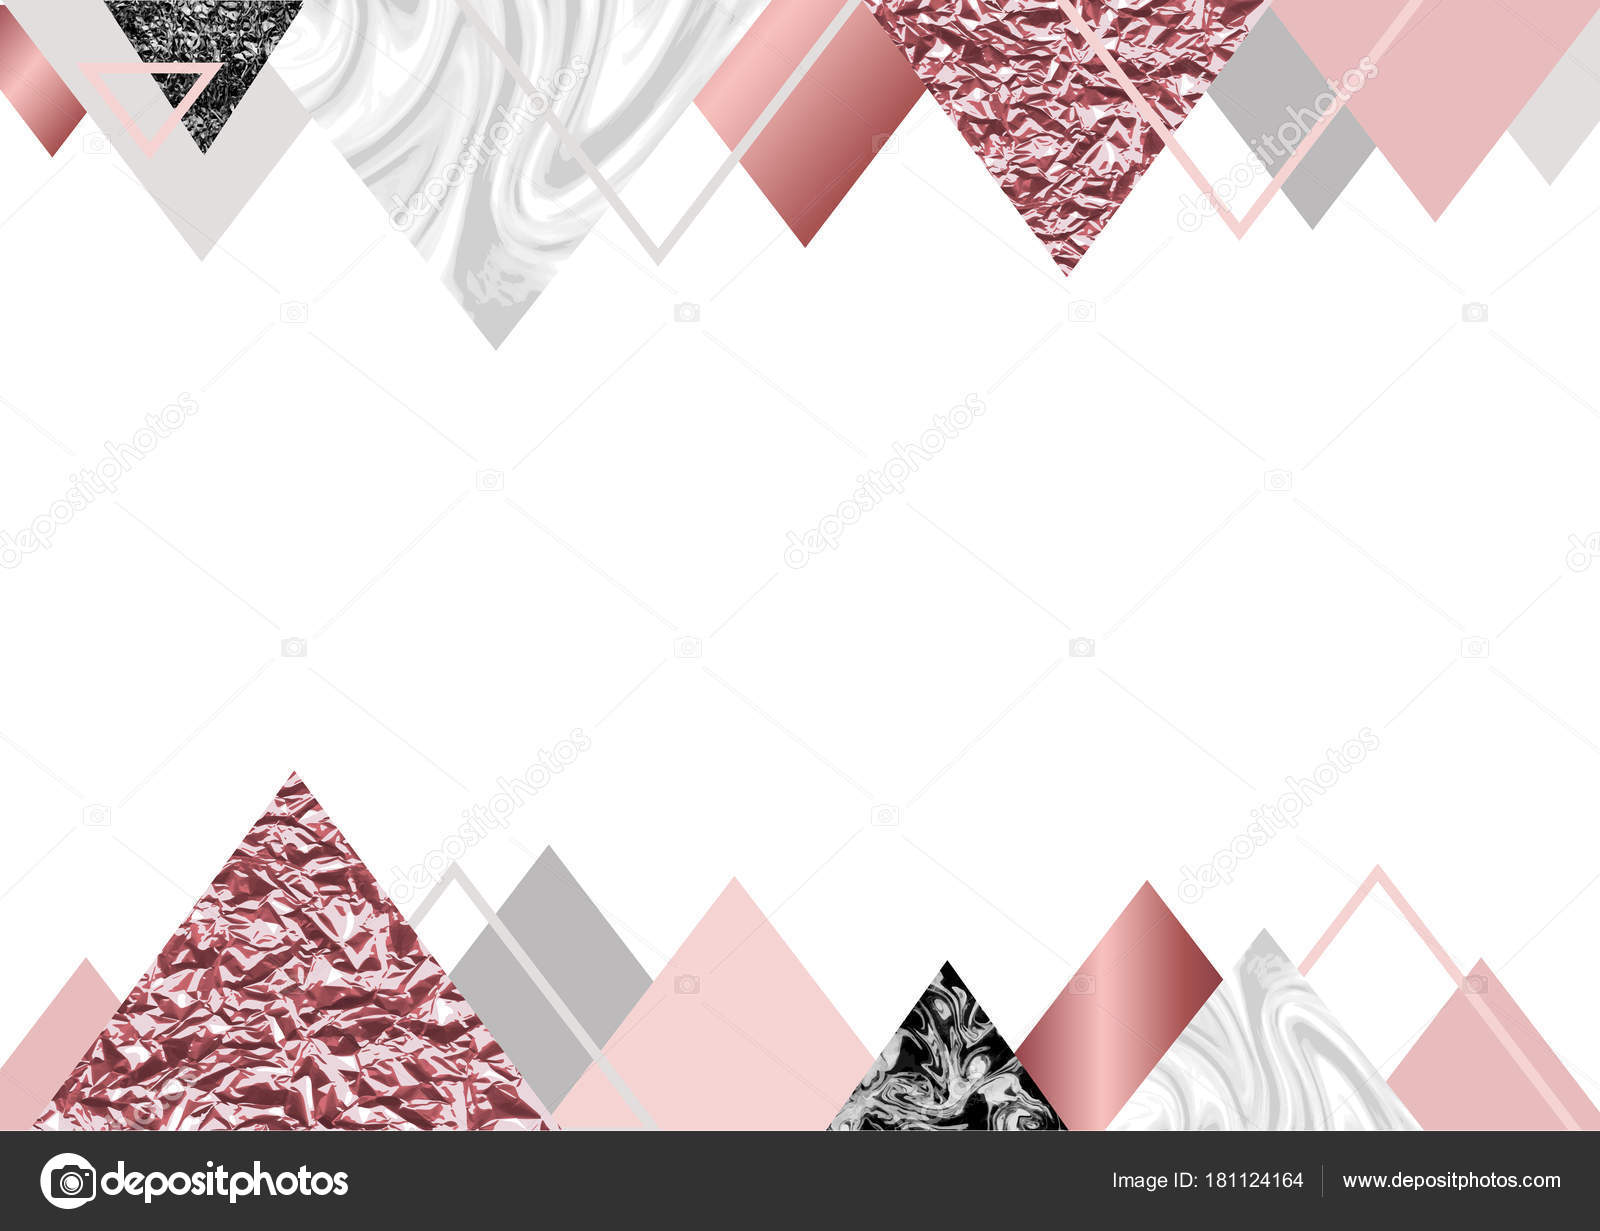 marble rose background in trendy minimalist geometric style with